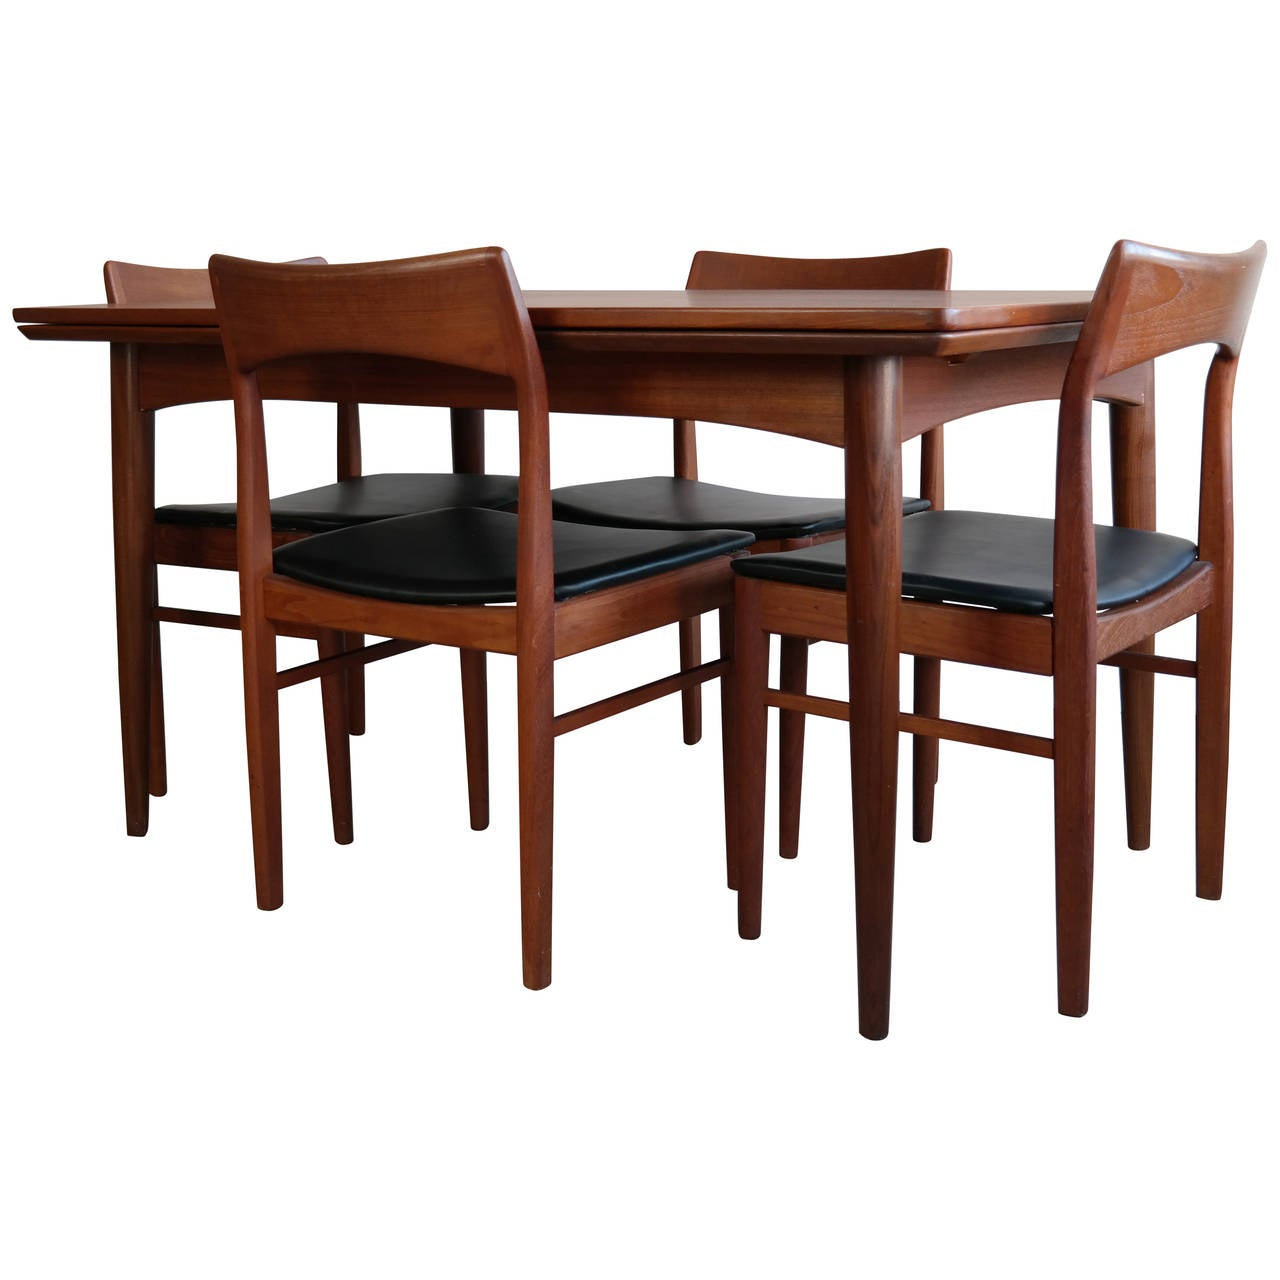 Danish modern dining set in teak at 1stdibs for Modern dining room sets